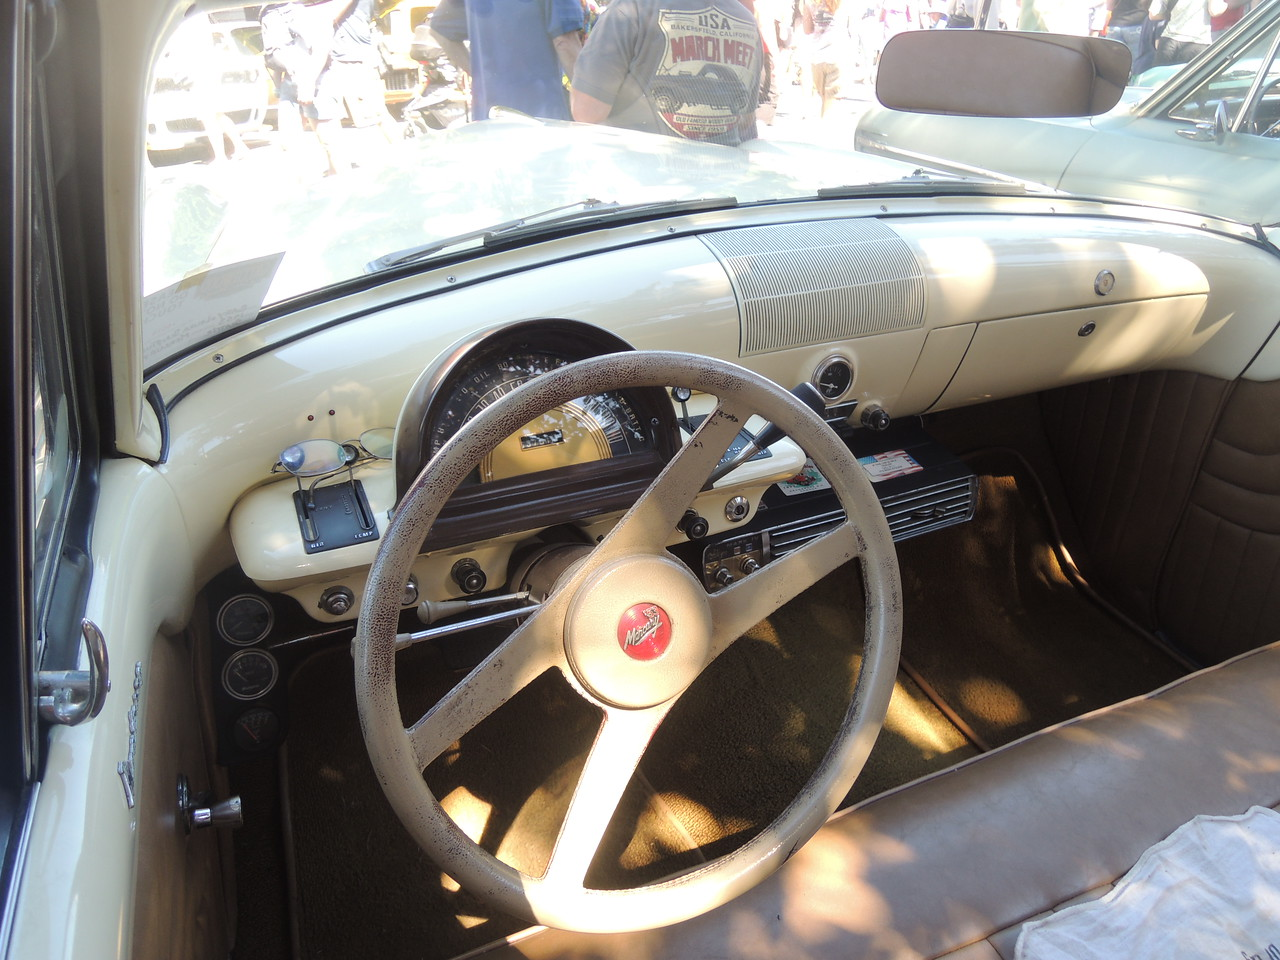 Cockpit of the 1955 Merc